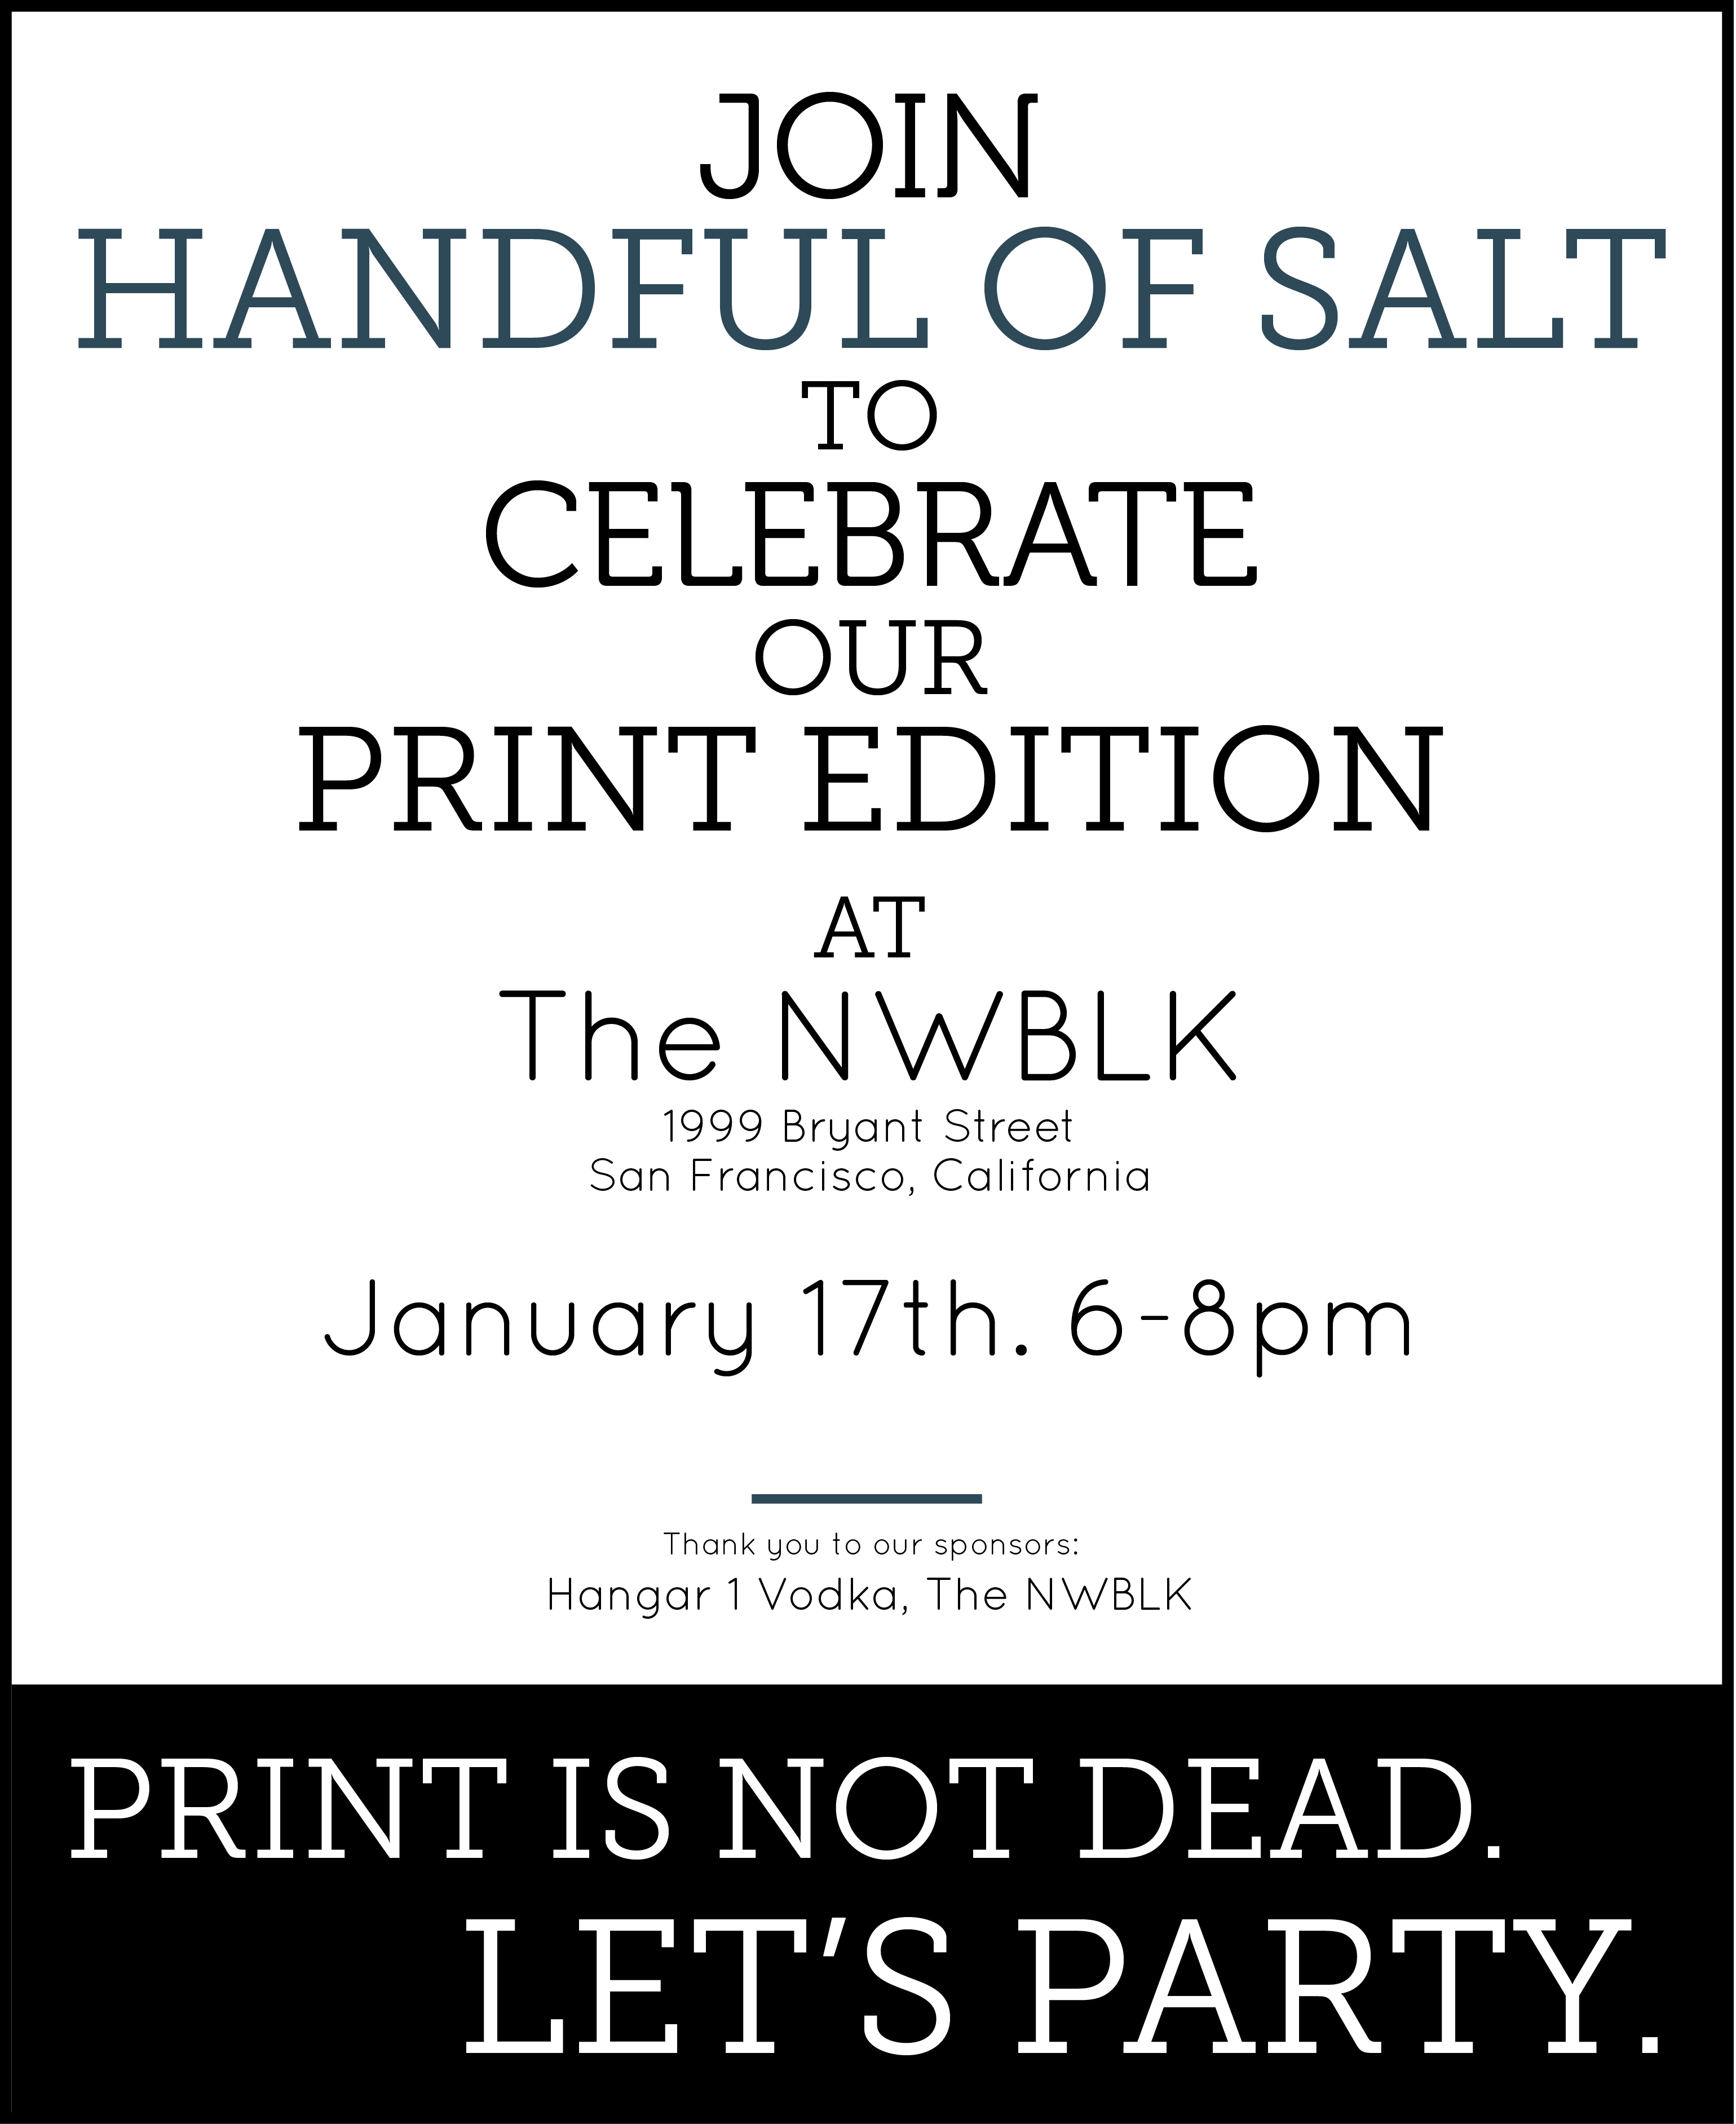 An invitation from Handful of Salt